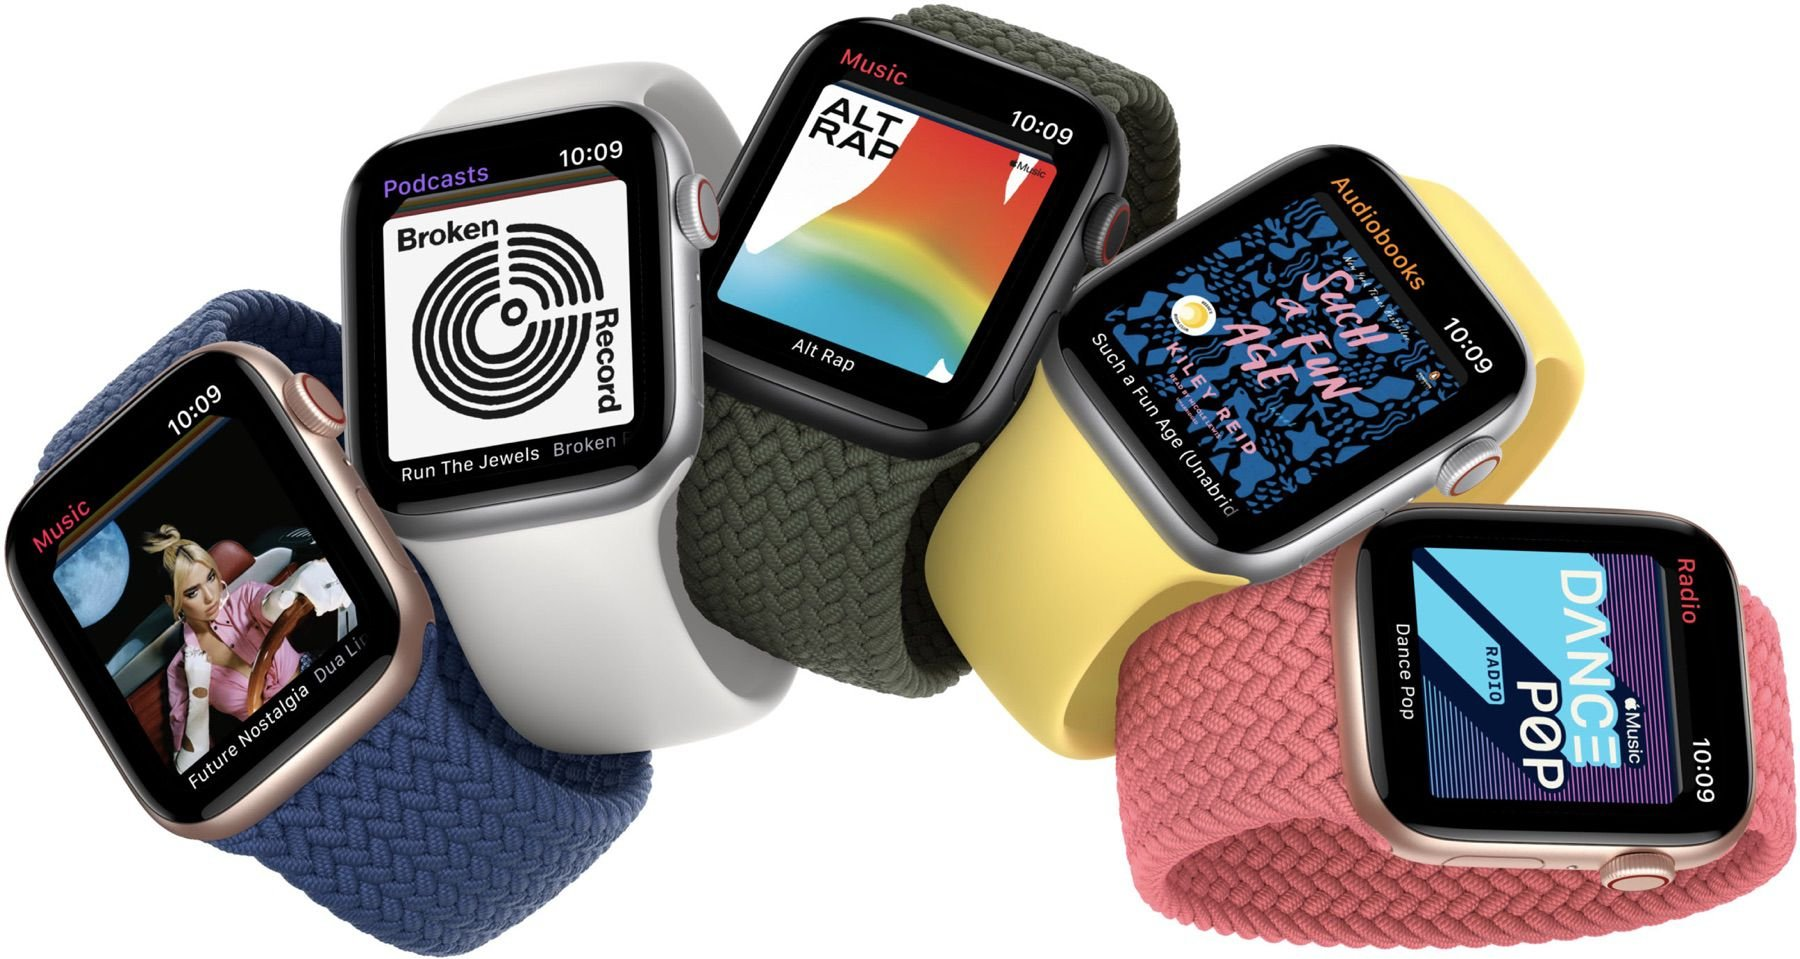 Apple's Wearables, Home and Accessories Category Sets New June Quarter Revenue Record of $8.8 Billion